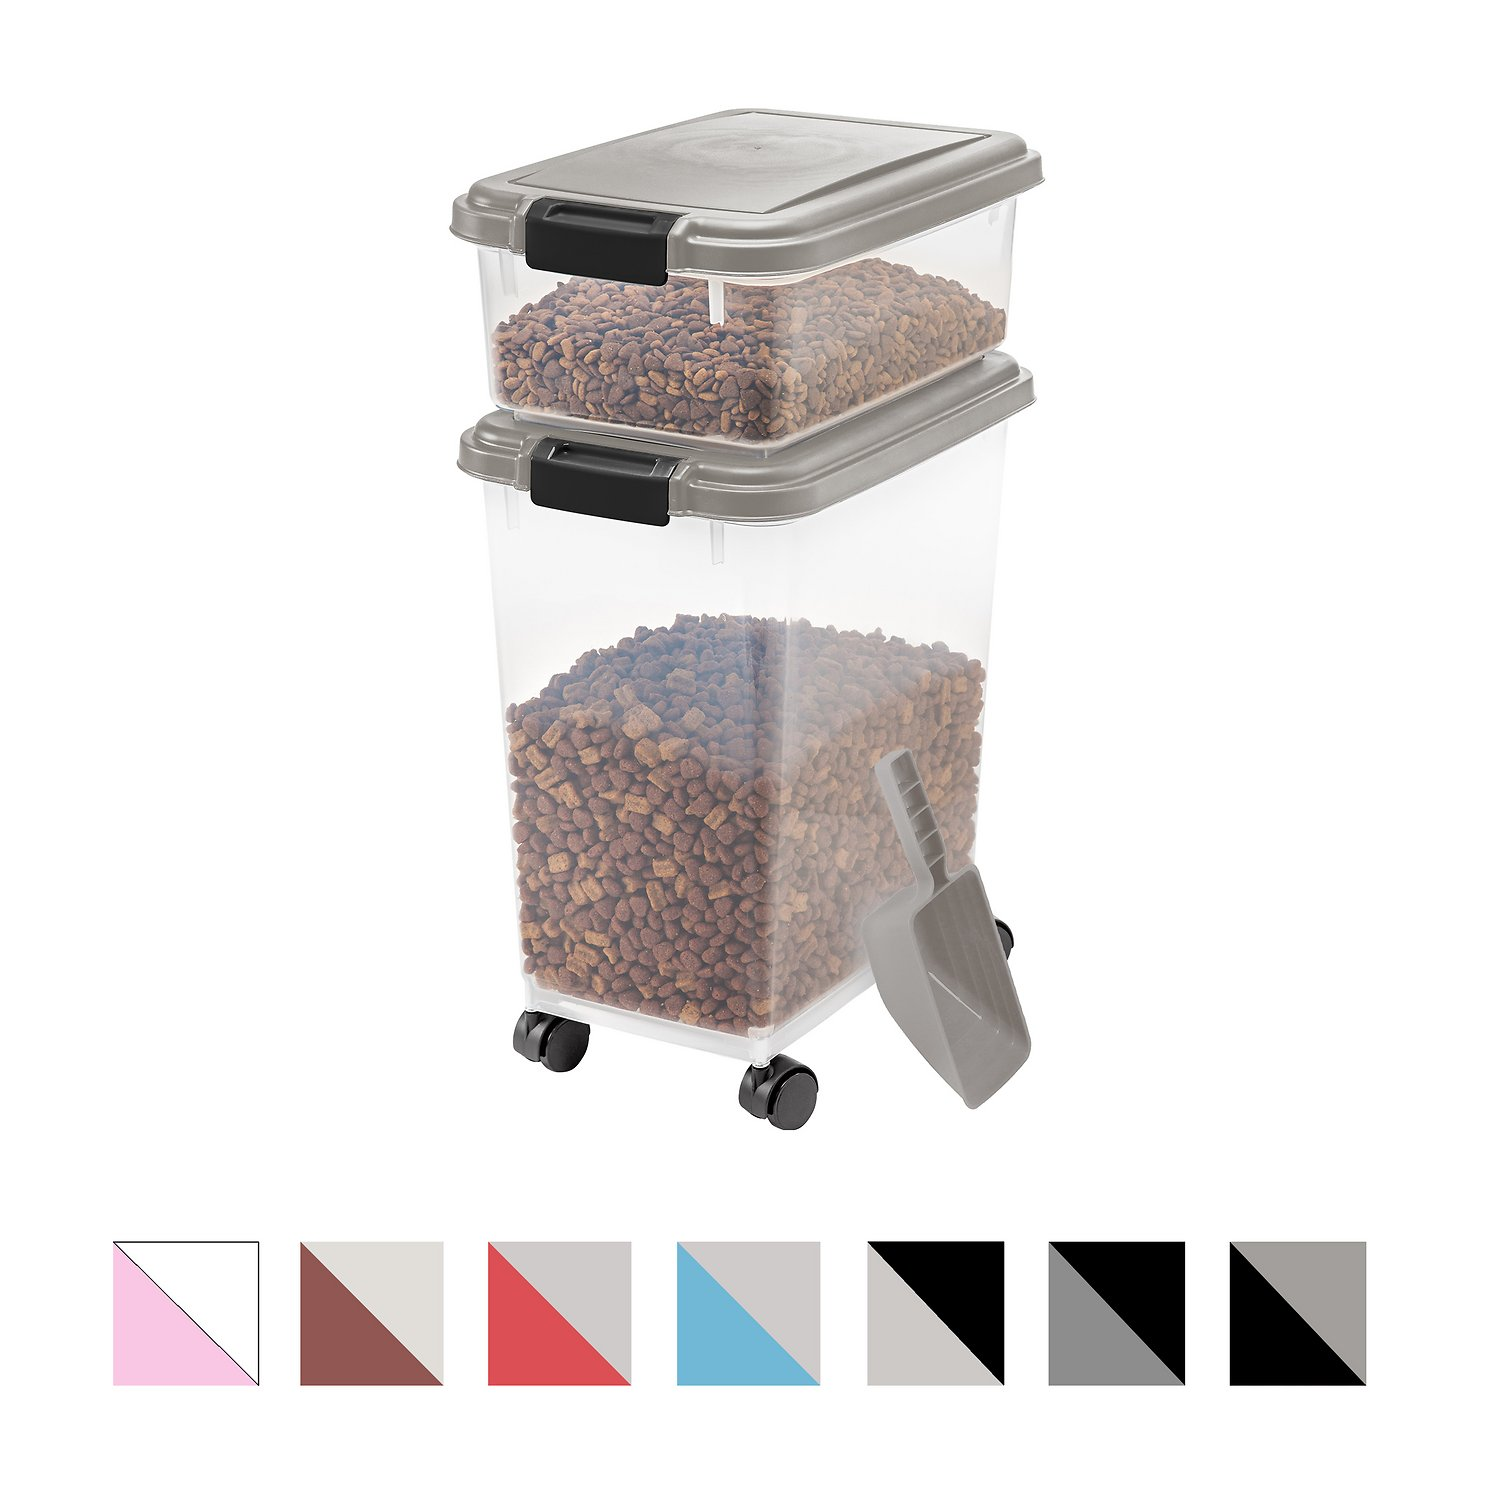 Beautiful IRIS Airtight Food Storage Container U0026 Scoop Combo, Chrome/Black   Chewy.com